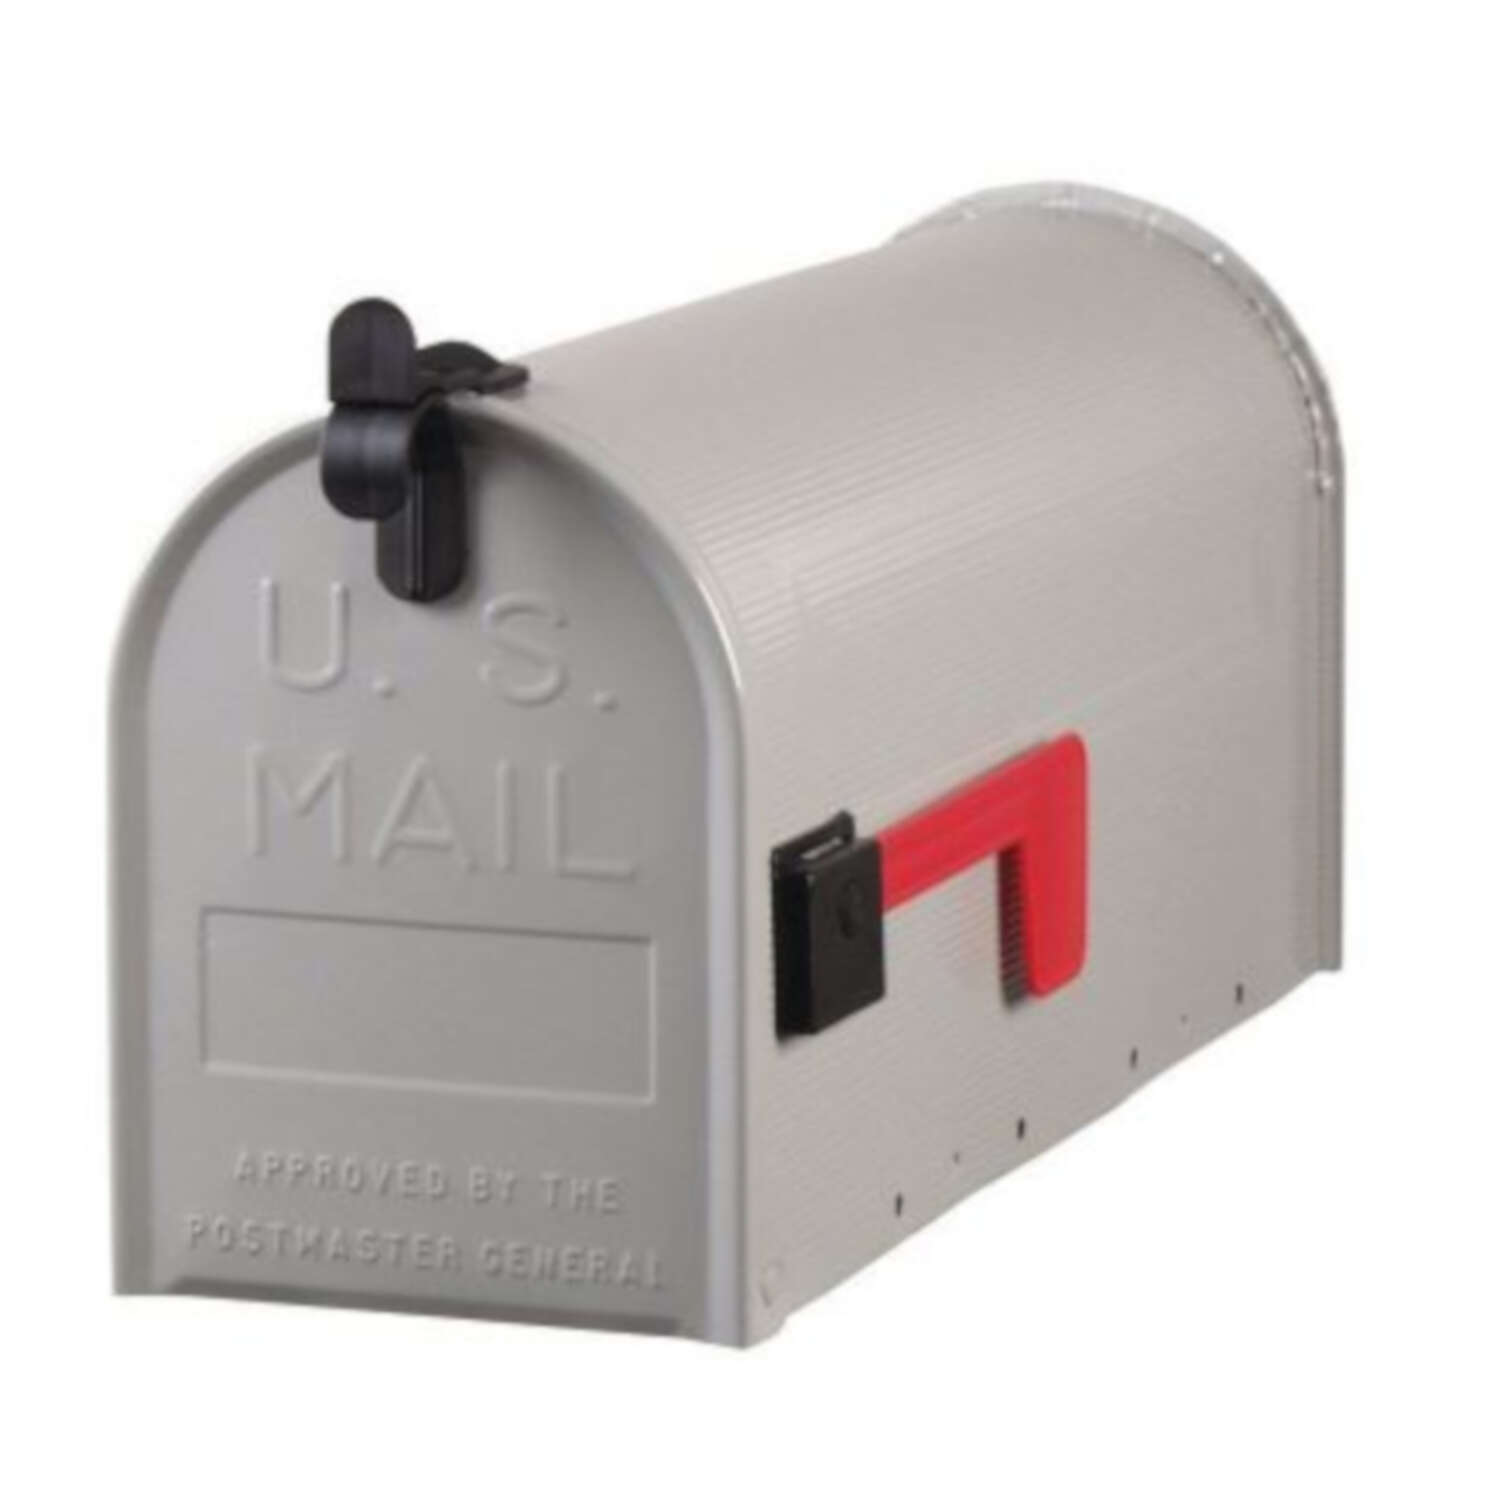 Gibraltar Mailboxes  Grayson  Galvanized Steel  Post Mounted  Gray  Mailbox  9-1/2 in. H x 6-3/4 in.